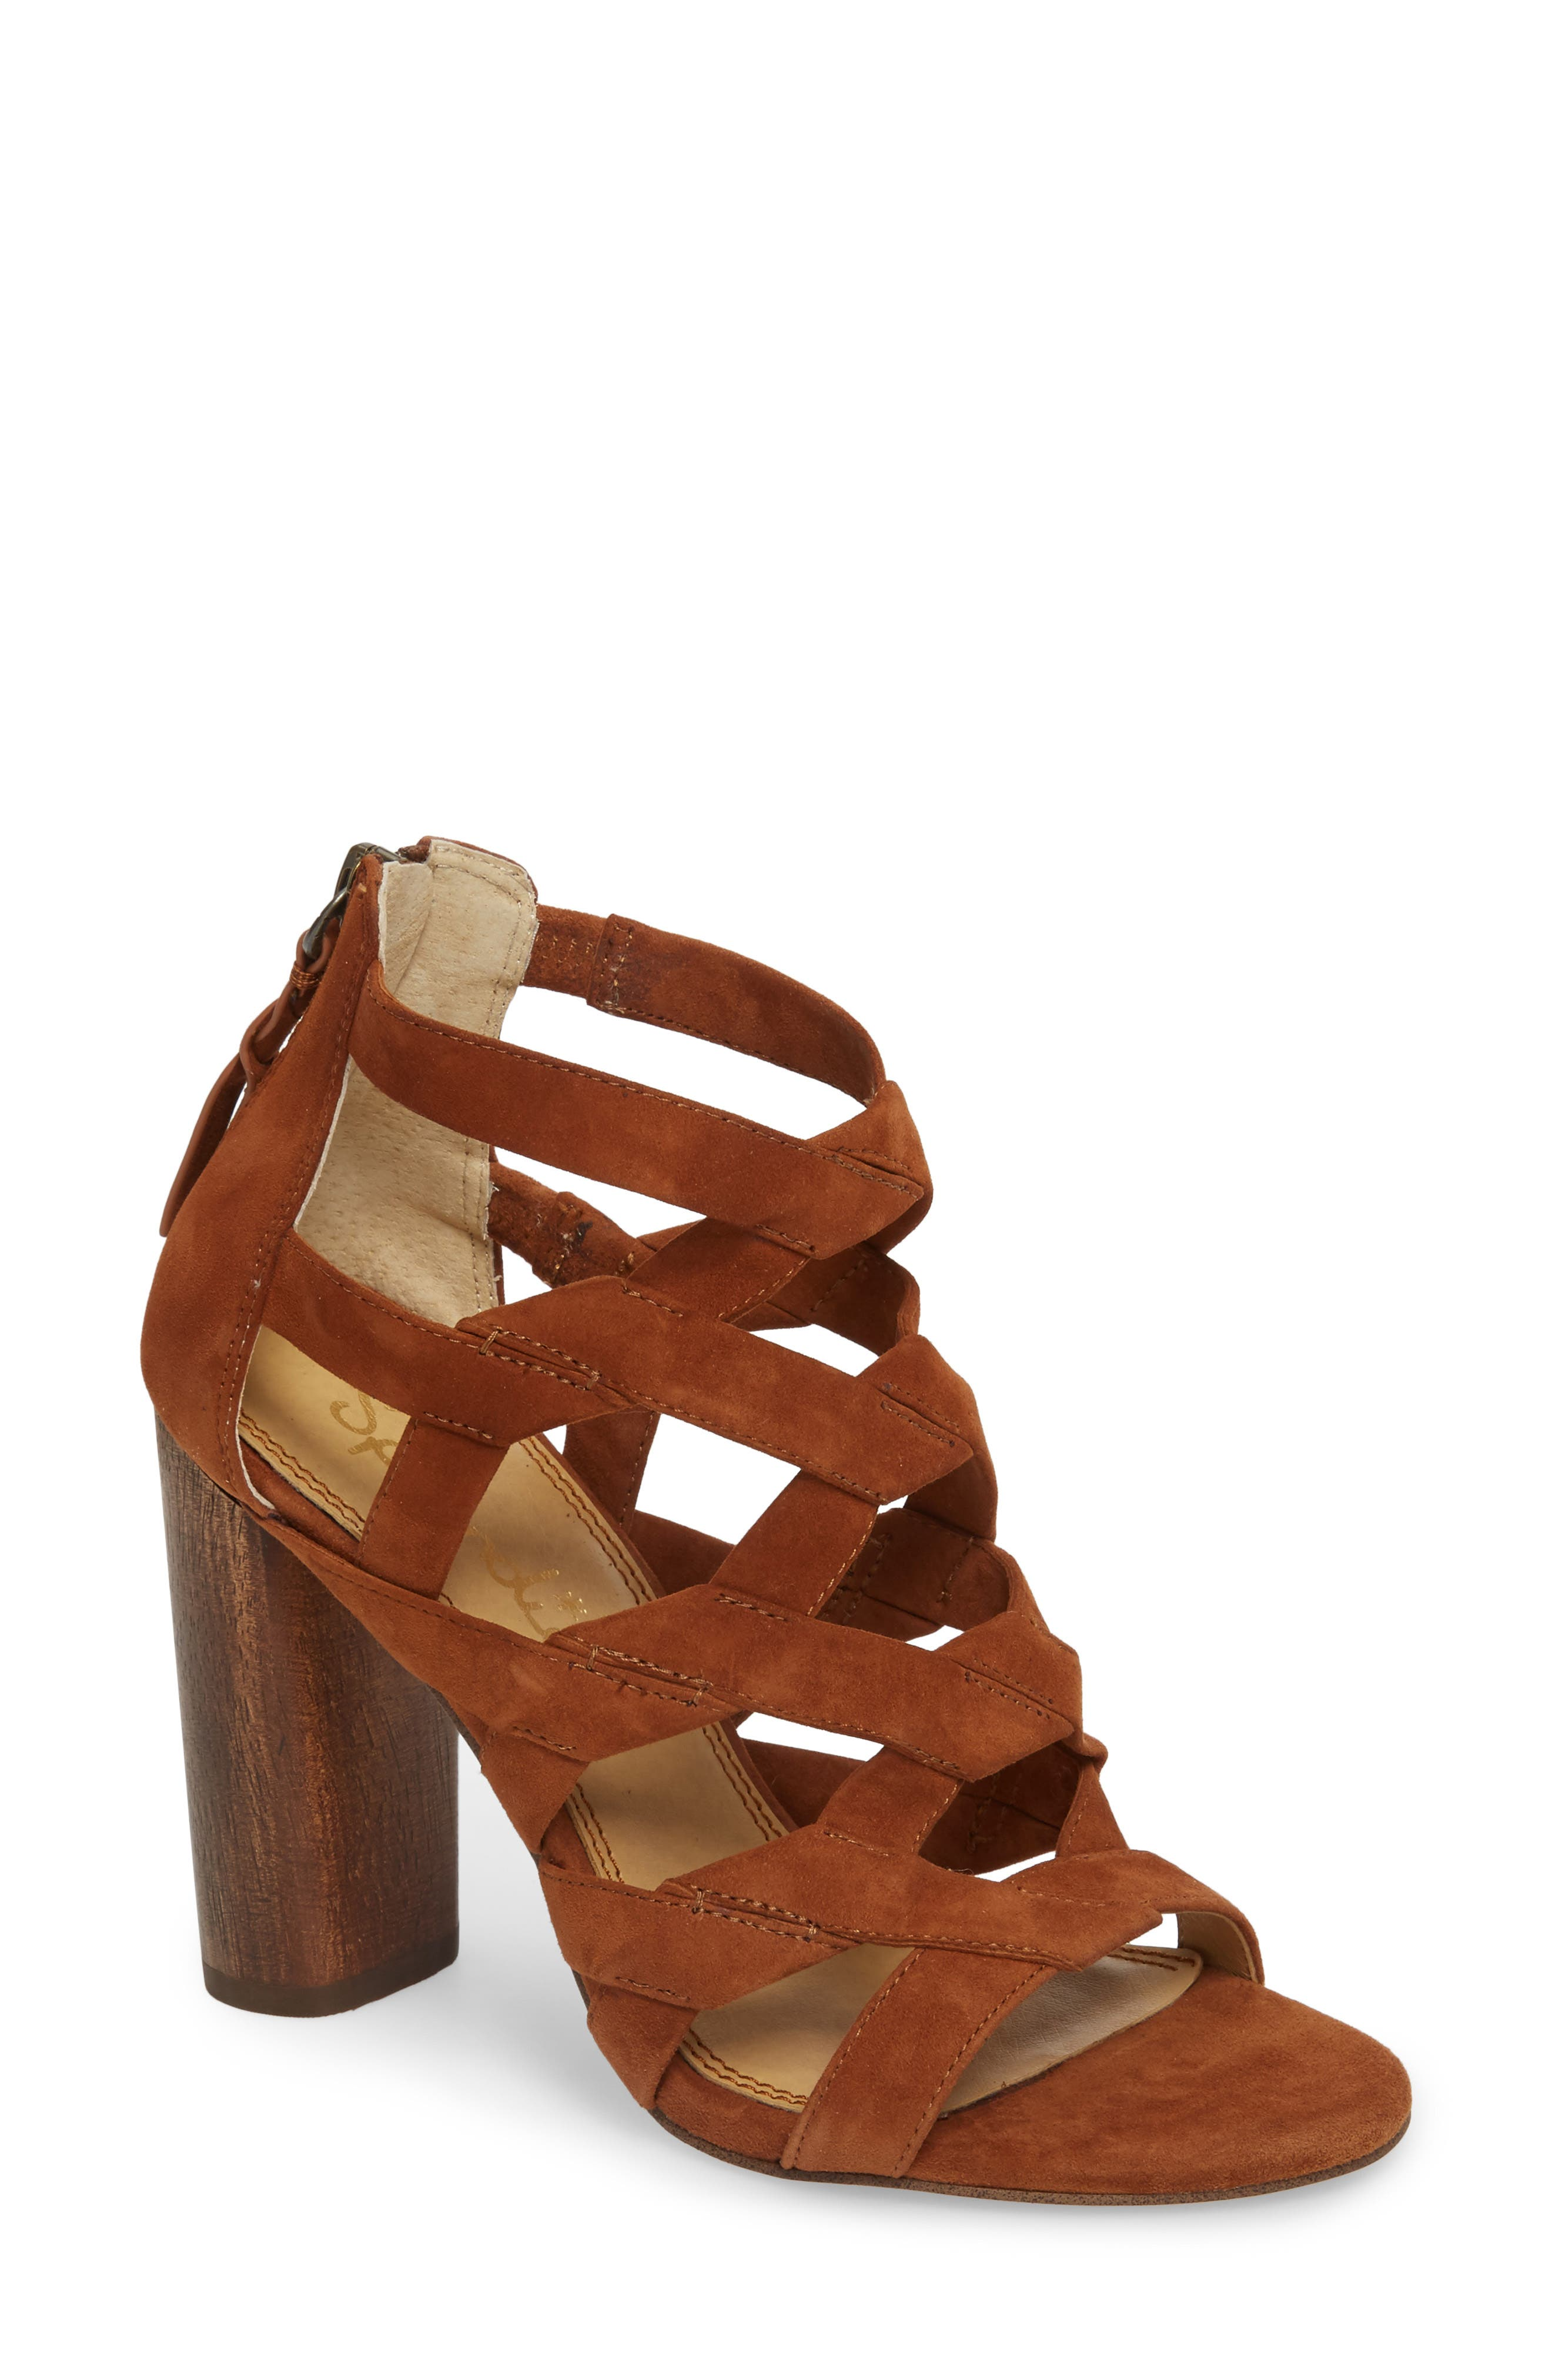 Bartlett Angled Cage Sandal,                             Main thumbnail 1, color,                             Caramel Suede